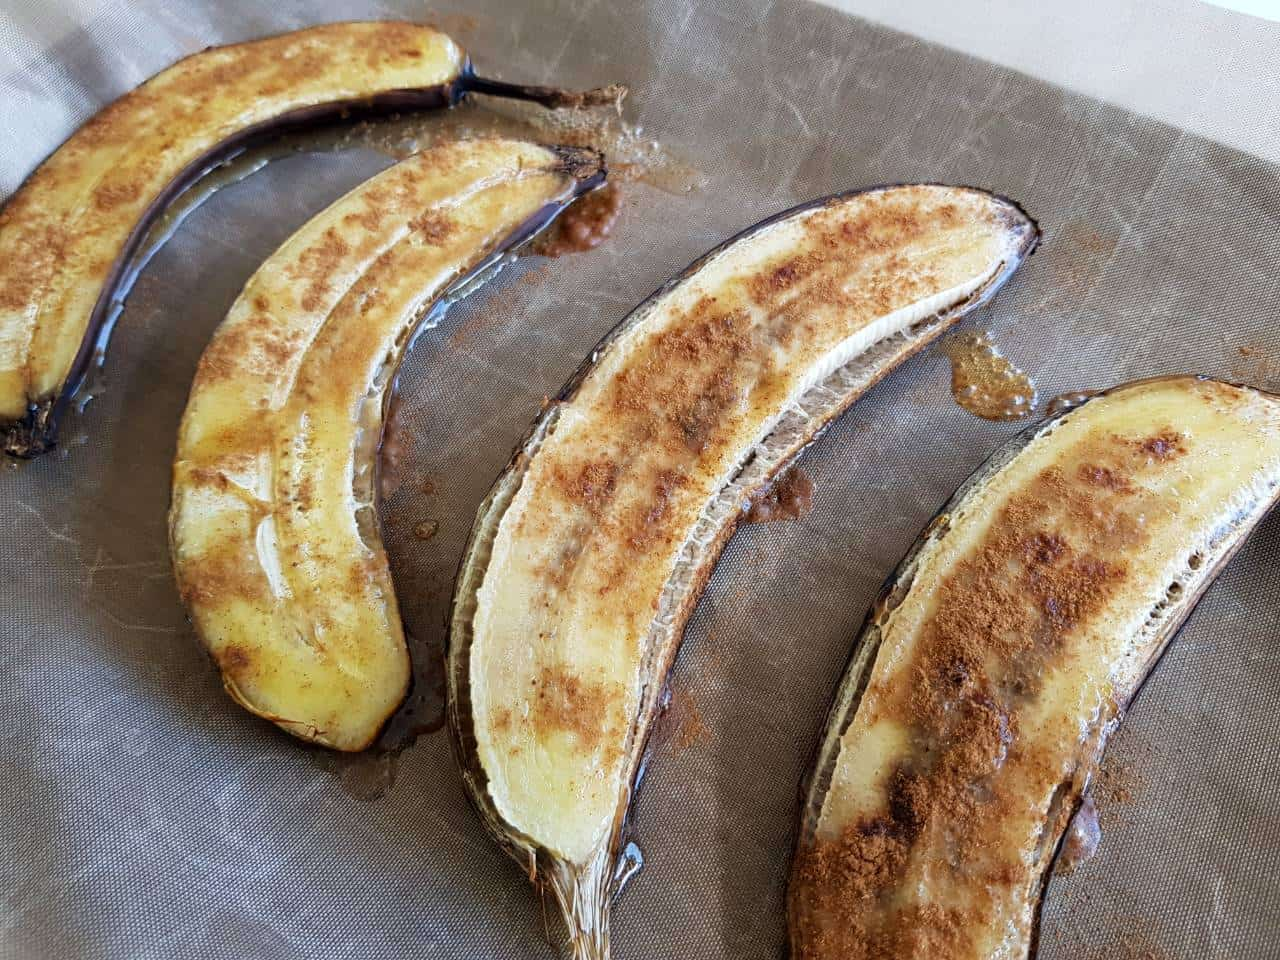 Bananas baked with honey and cinnamon.